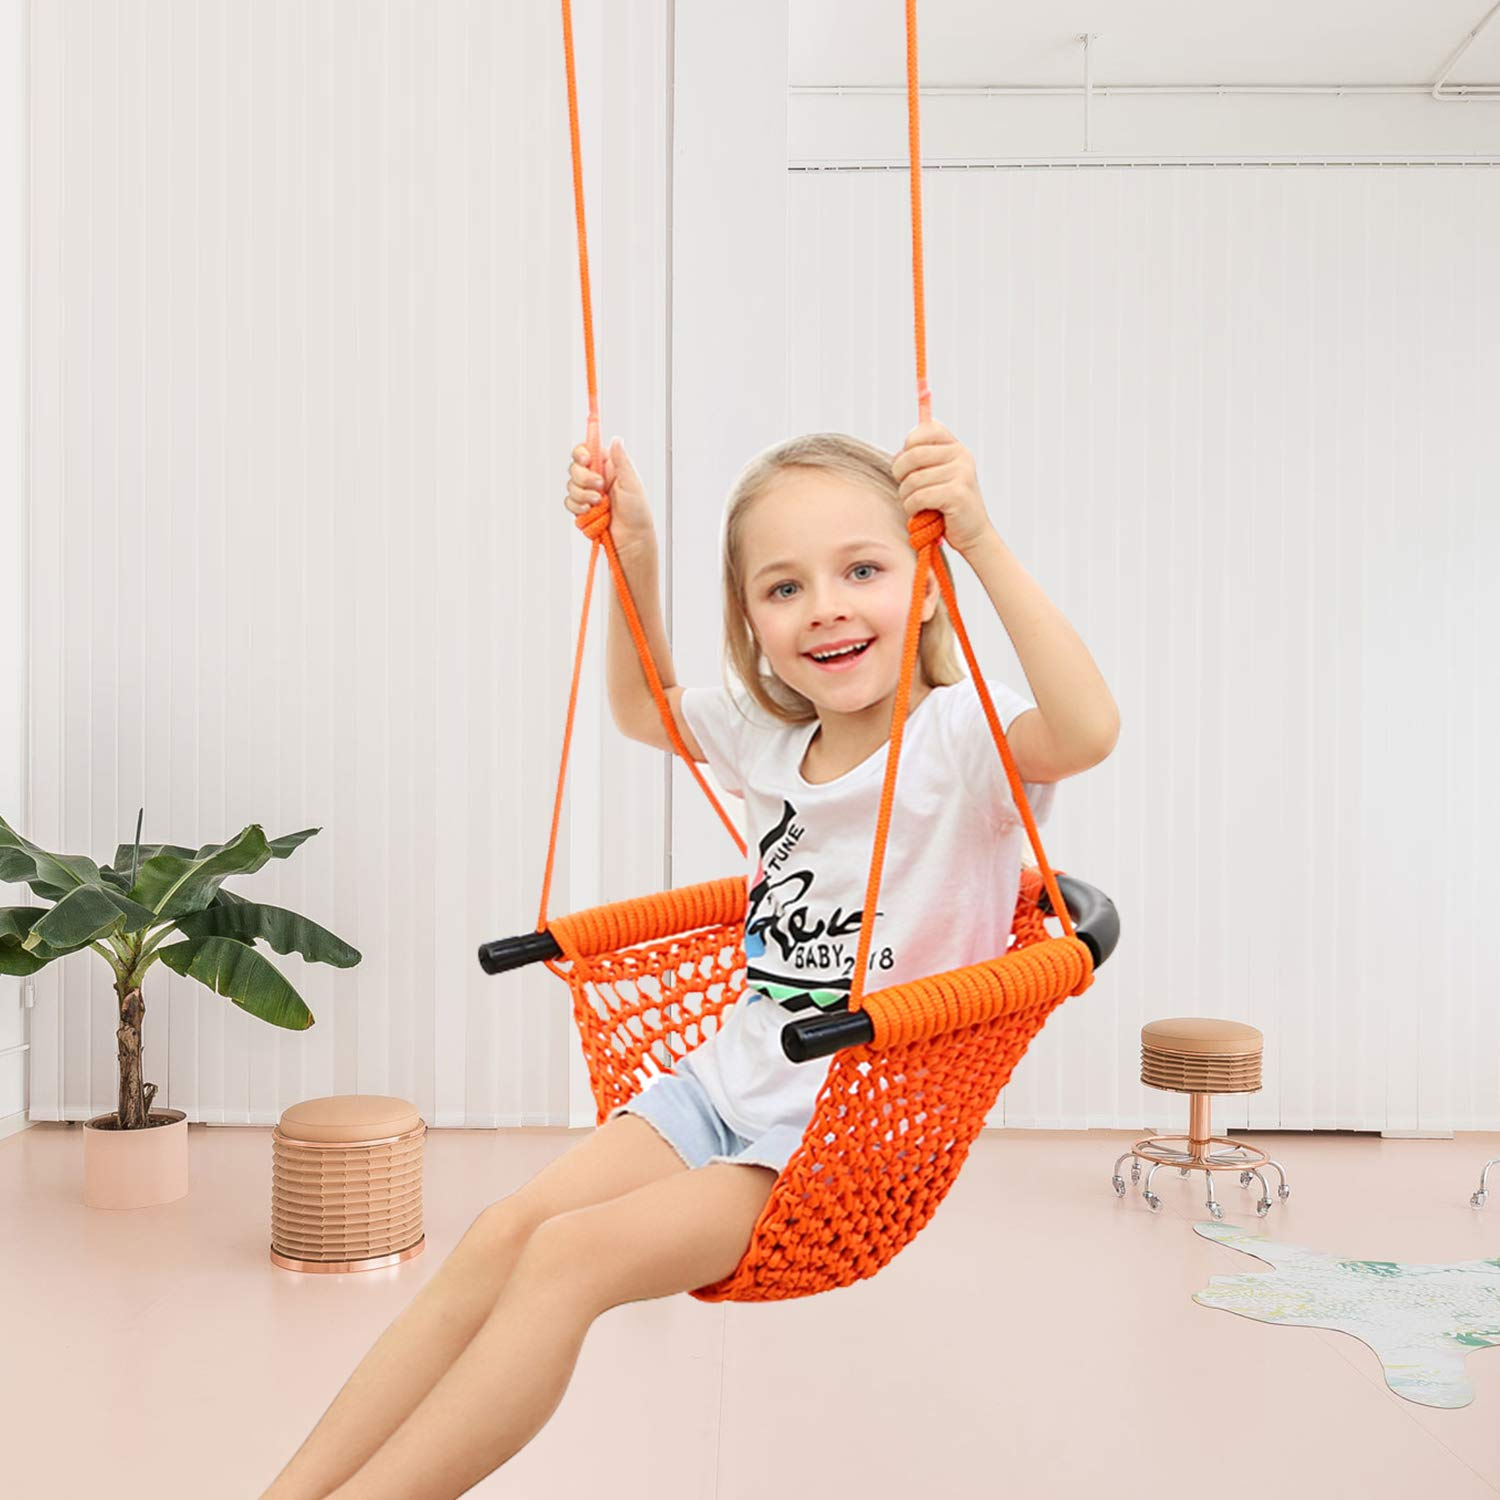 JKsmart Swing Seat for Kids Heavy Duty Rope Play Secure Children Swing Set,Perfect for Indoor,Outdoor,Playground,Home,Tree,with Snap Hooks and Swing Straps,440 lbs Capacity,Orange(Patent Pending) by JKsmart (Image #5)